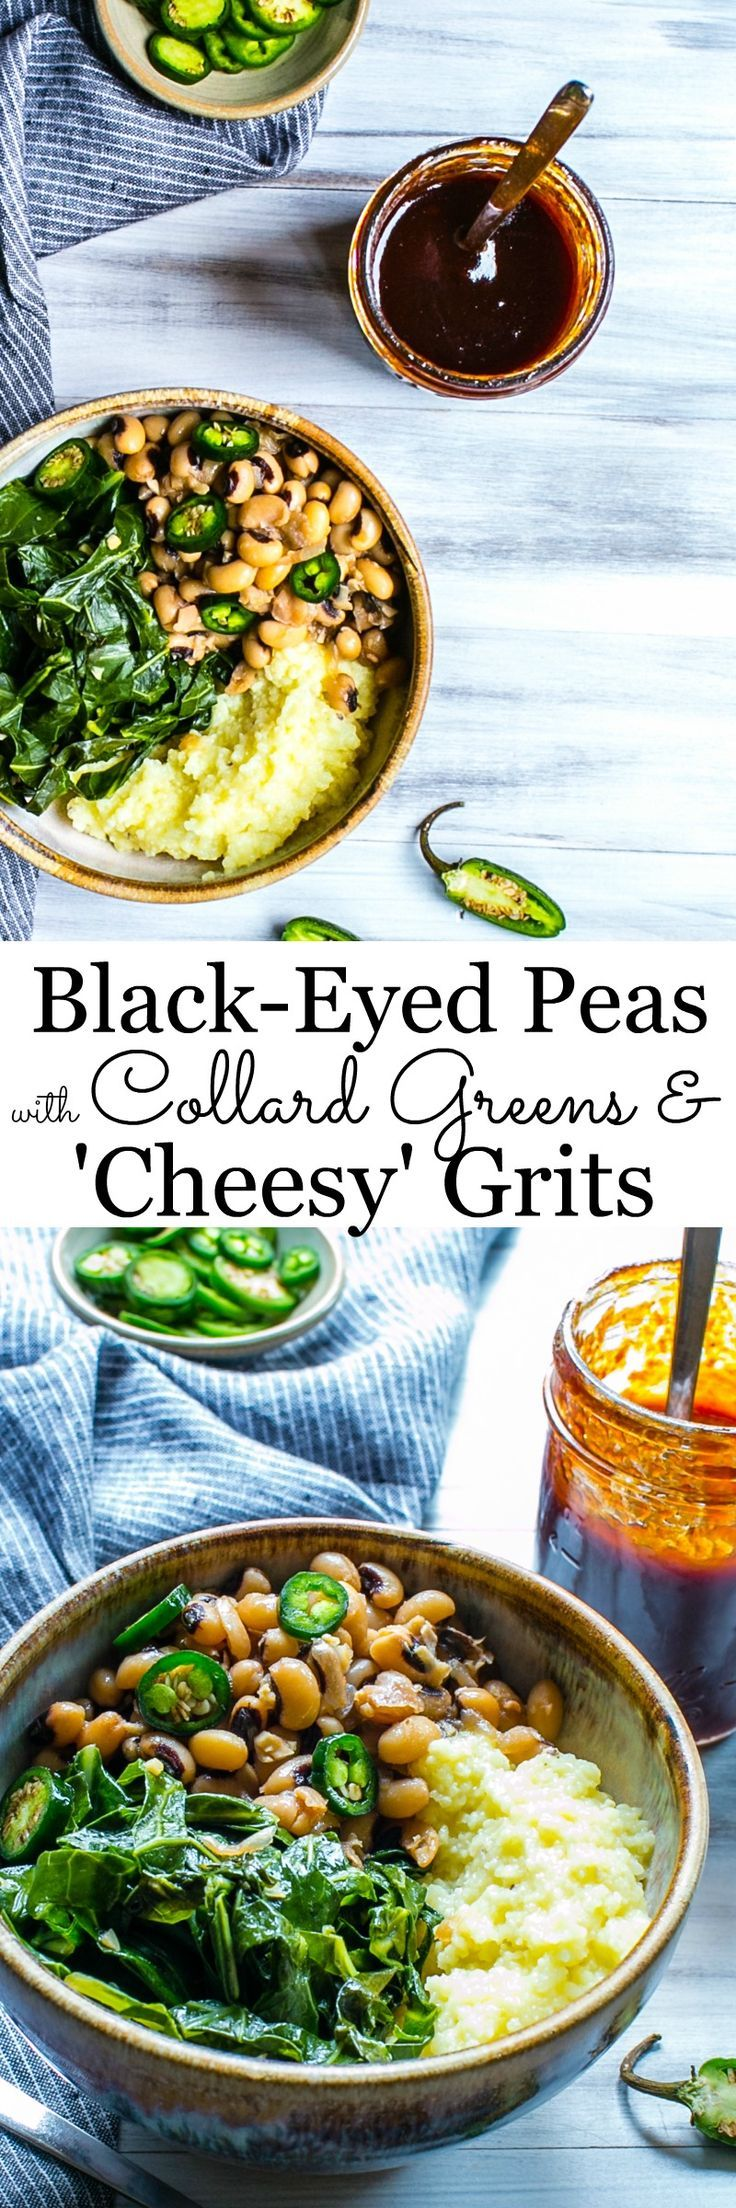 Quick and Easy Black Eyed Peas with Smoky Collards and 'Cheesy' Grits. Slather with your favorite BBQ sauce. Vegan or Vegetarian | Vanilla And Bean